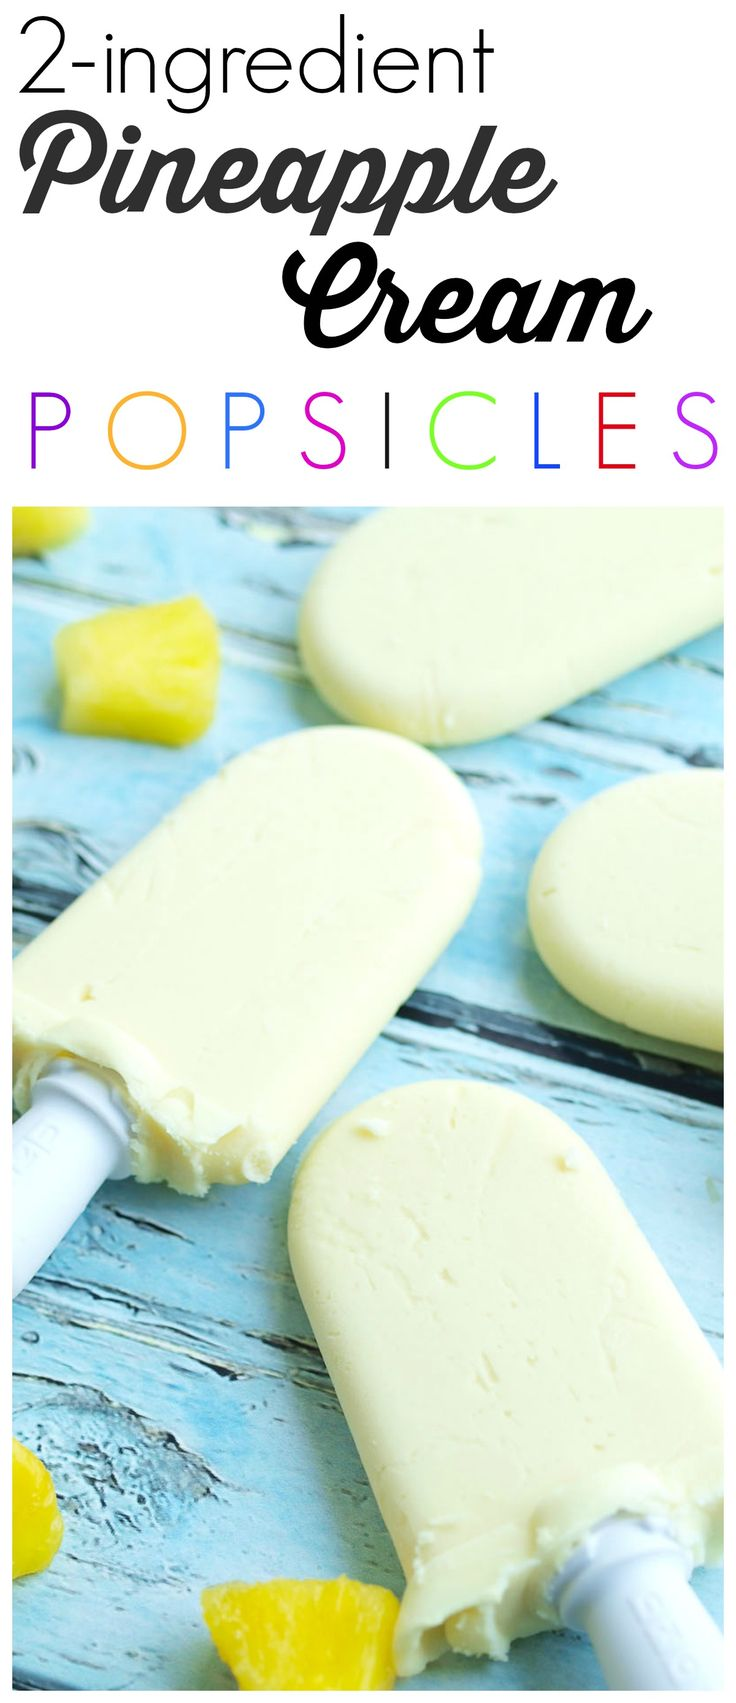 2 ingredient Pineapple Cream Popsicles (dairy-free) Nothing fake here! All natural and no sugar added! These healthy homemade popsicles are a perfect summer treat! Great easy recipe.